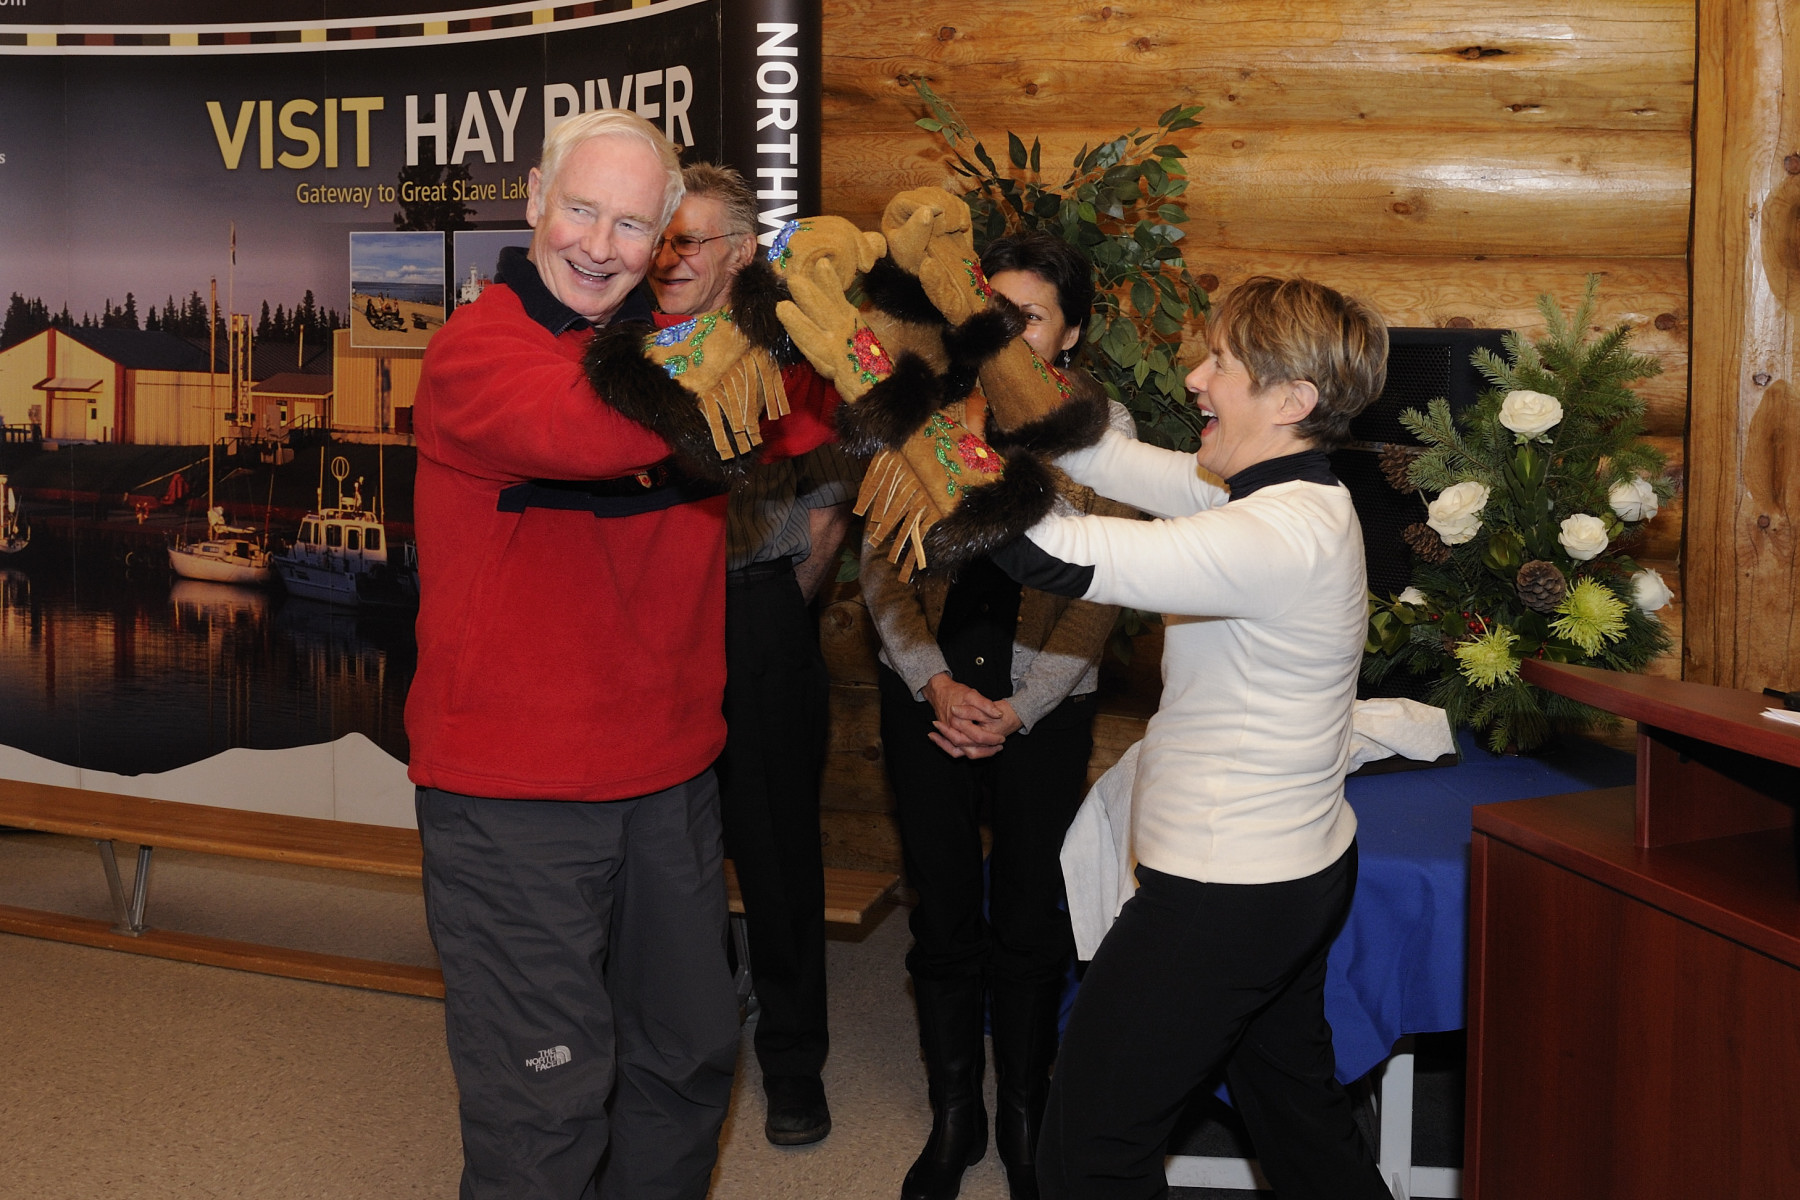 During the community reception in Hay River, Their Excellencies were presented with traditional Aboriginal leather gloves.